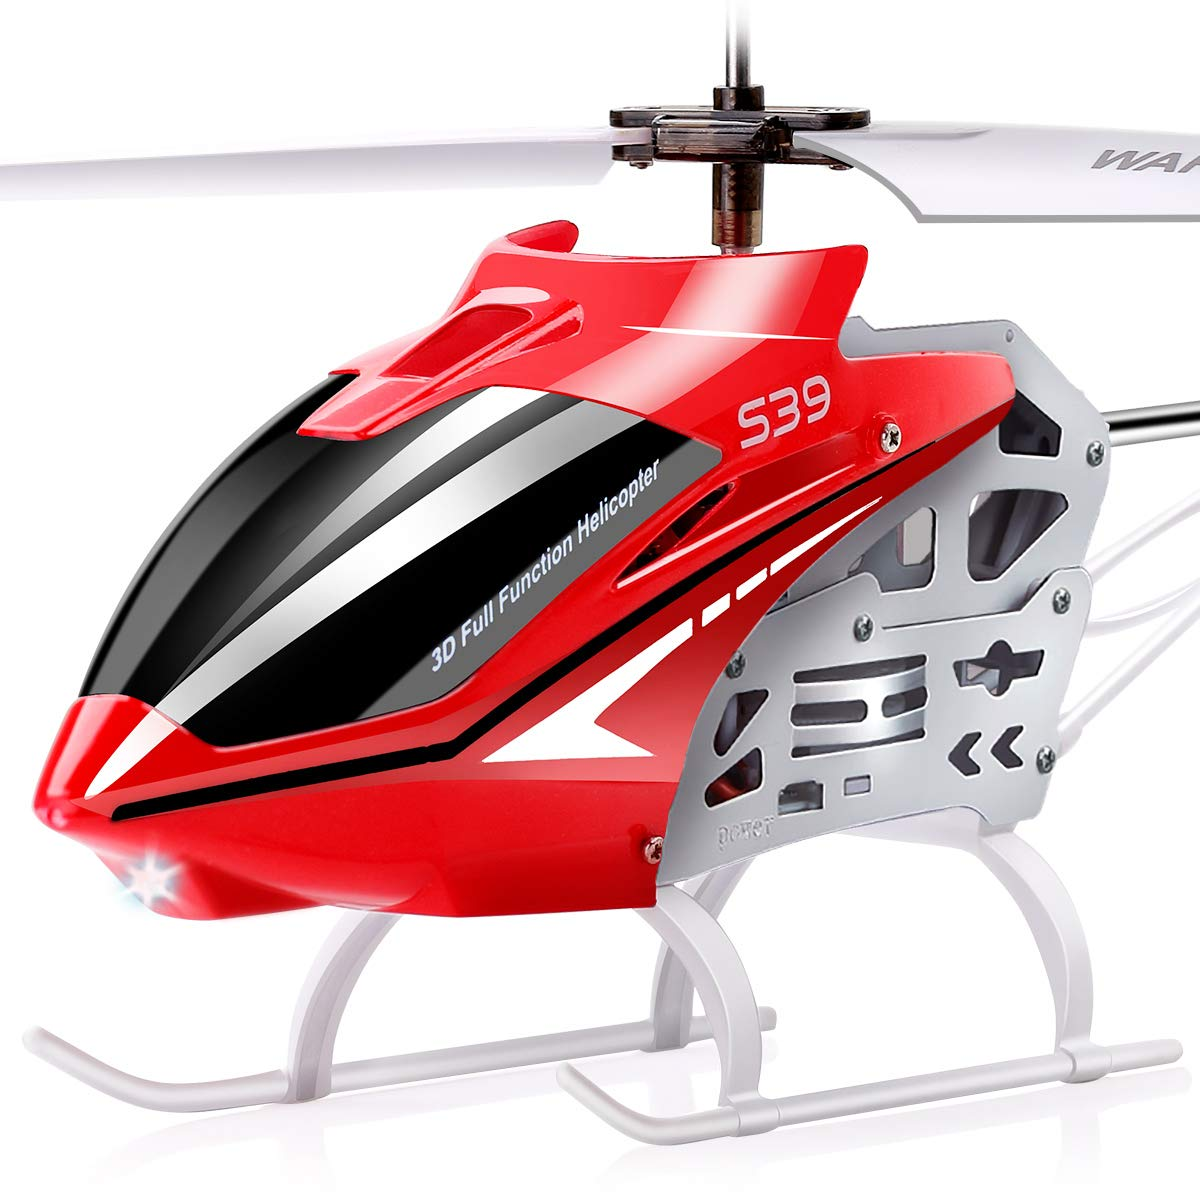 SYMA RC Helicopter, S39 Aircraft with 3.5 Channel